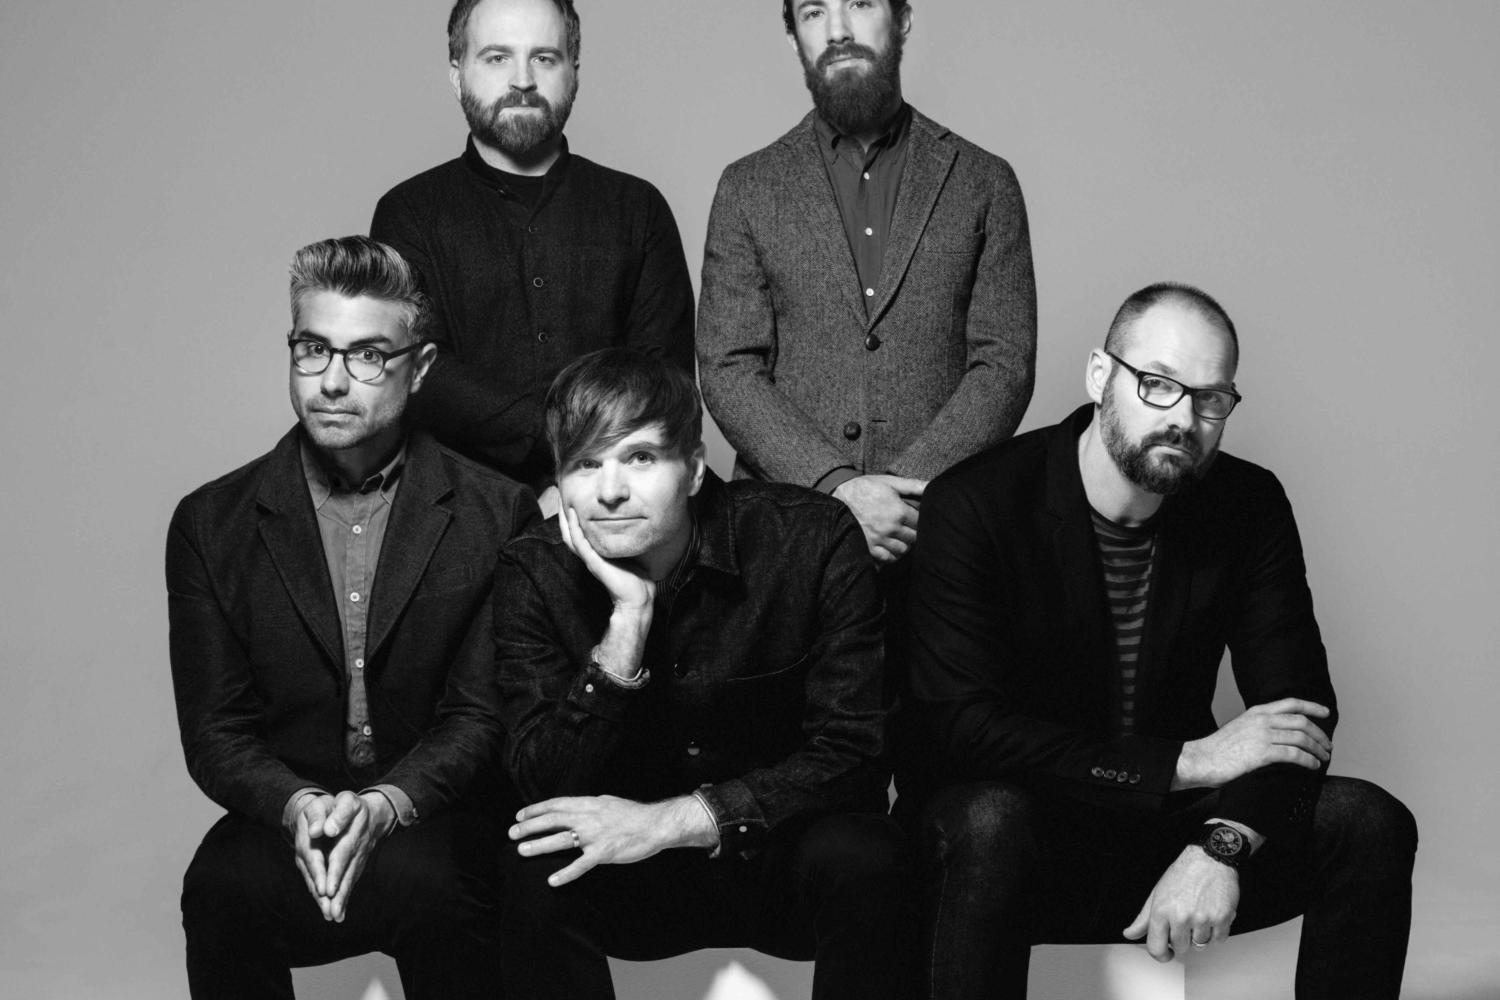 Death Cab For Cutie announce 'The Blue EP', share first track 'Kids in '99'